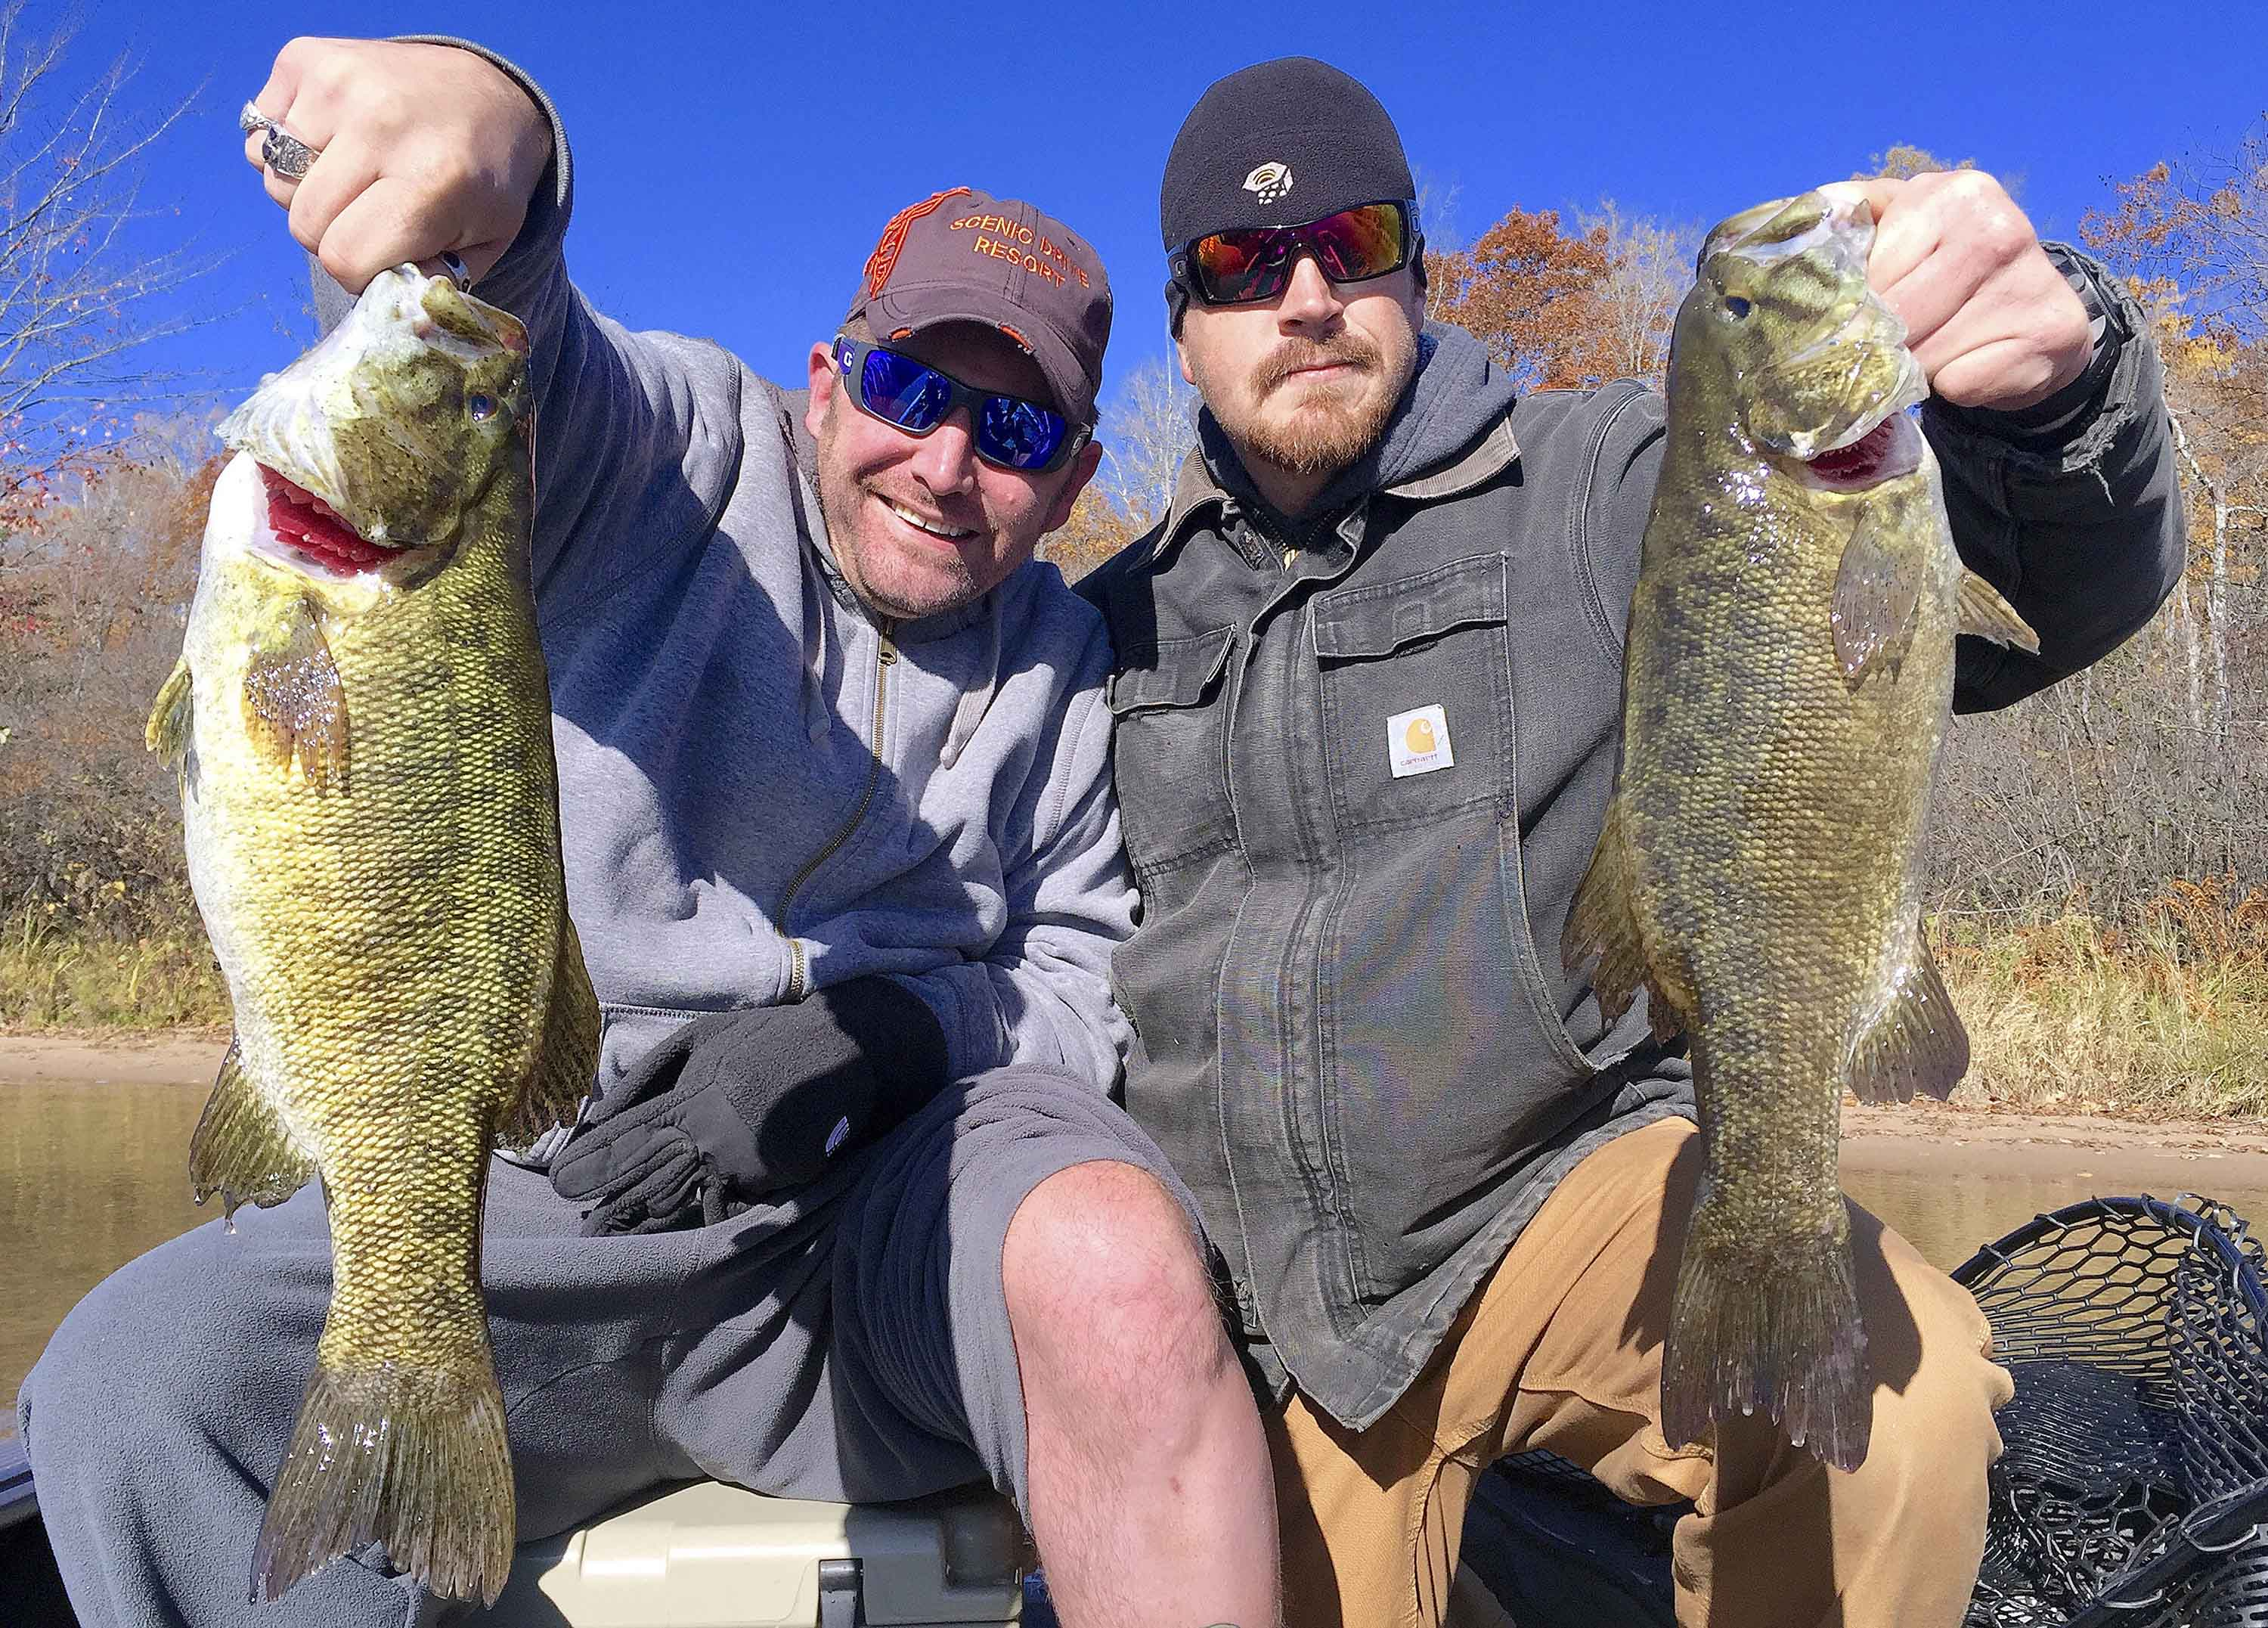 Wounded veterans Tony Simone, left, of Joliet, Ill., and Josh Krueger of Hubertus, Wis., show off a pair of 20-inch smallmouth bass they caught while fishing on Oct. 16, 2015. (Sam Cook/Duluth News Tribune/TNS)